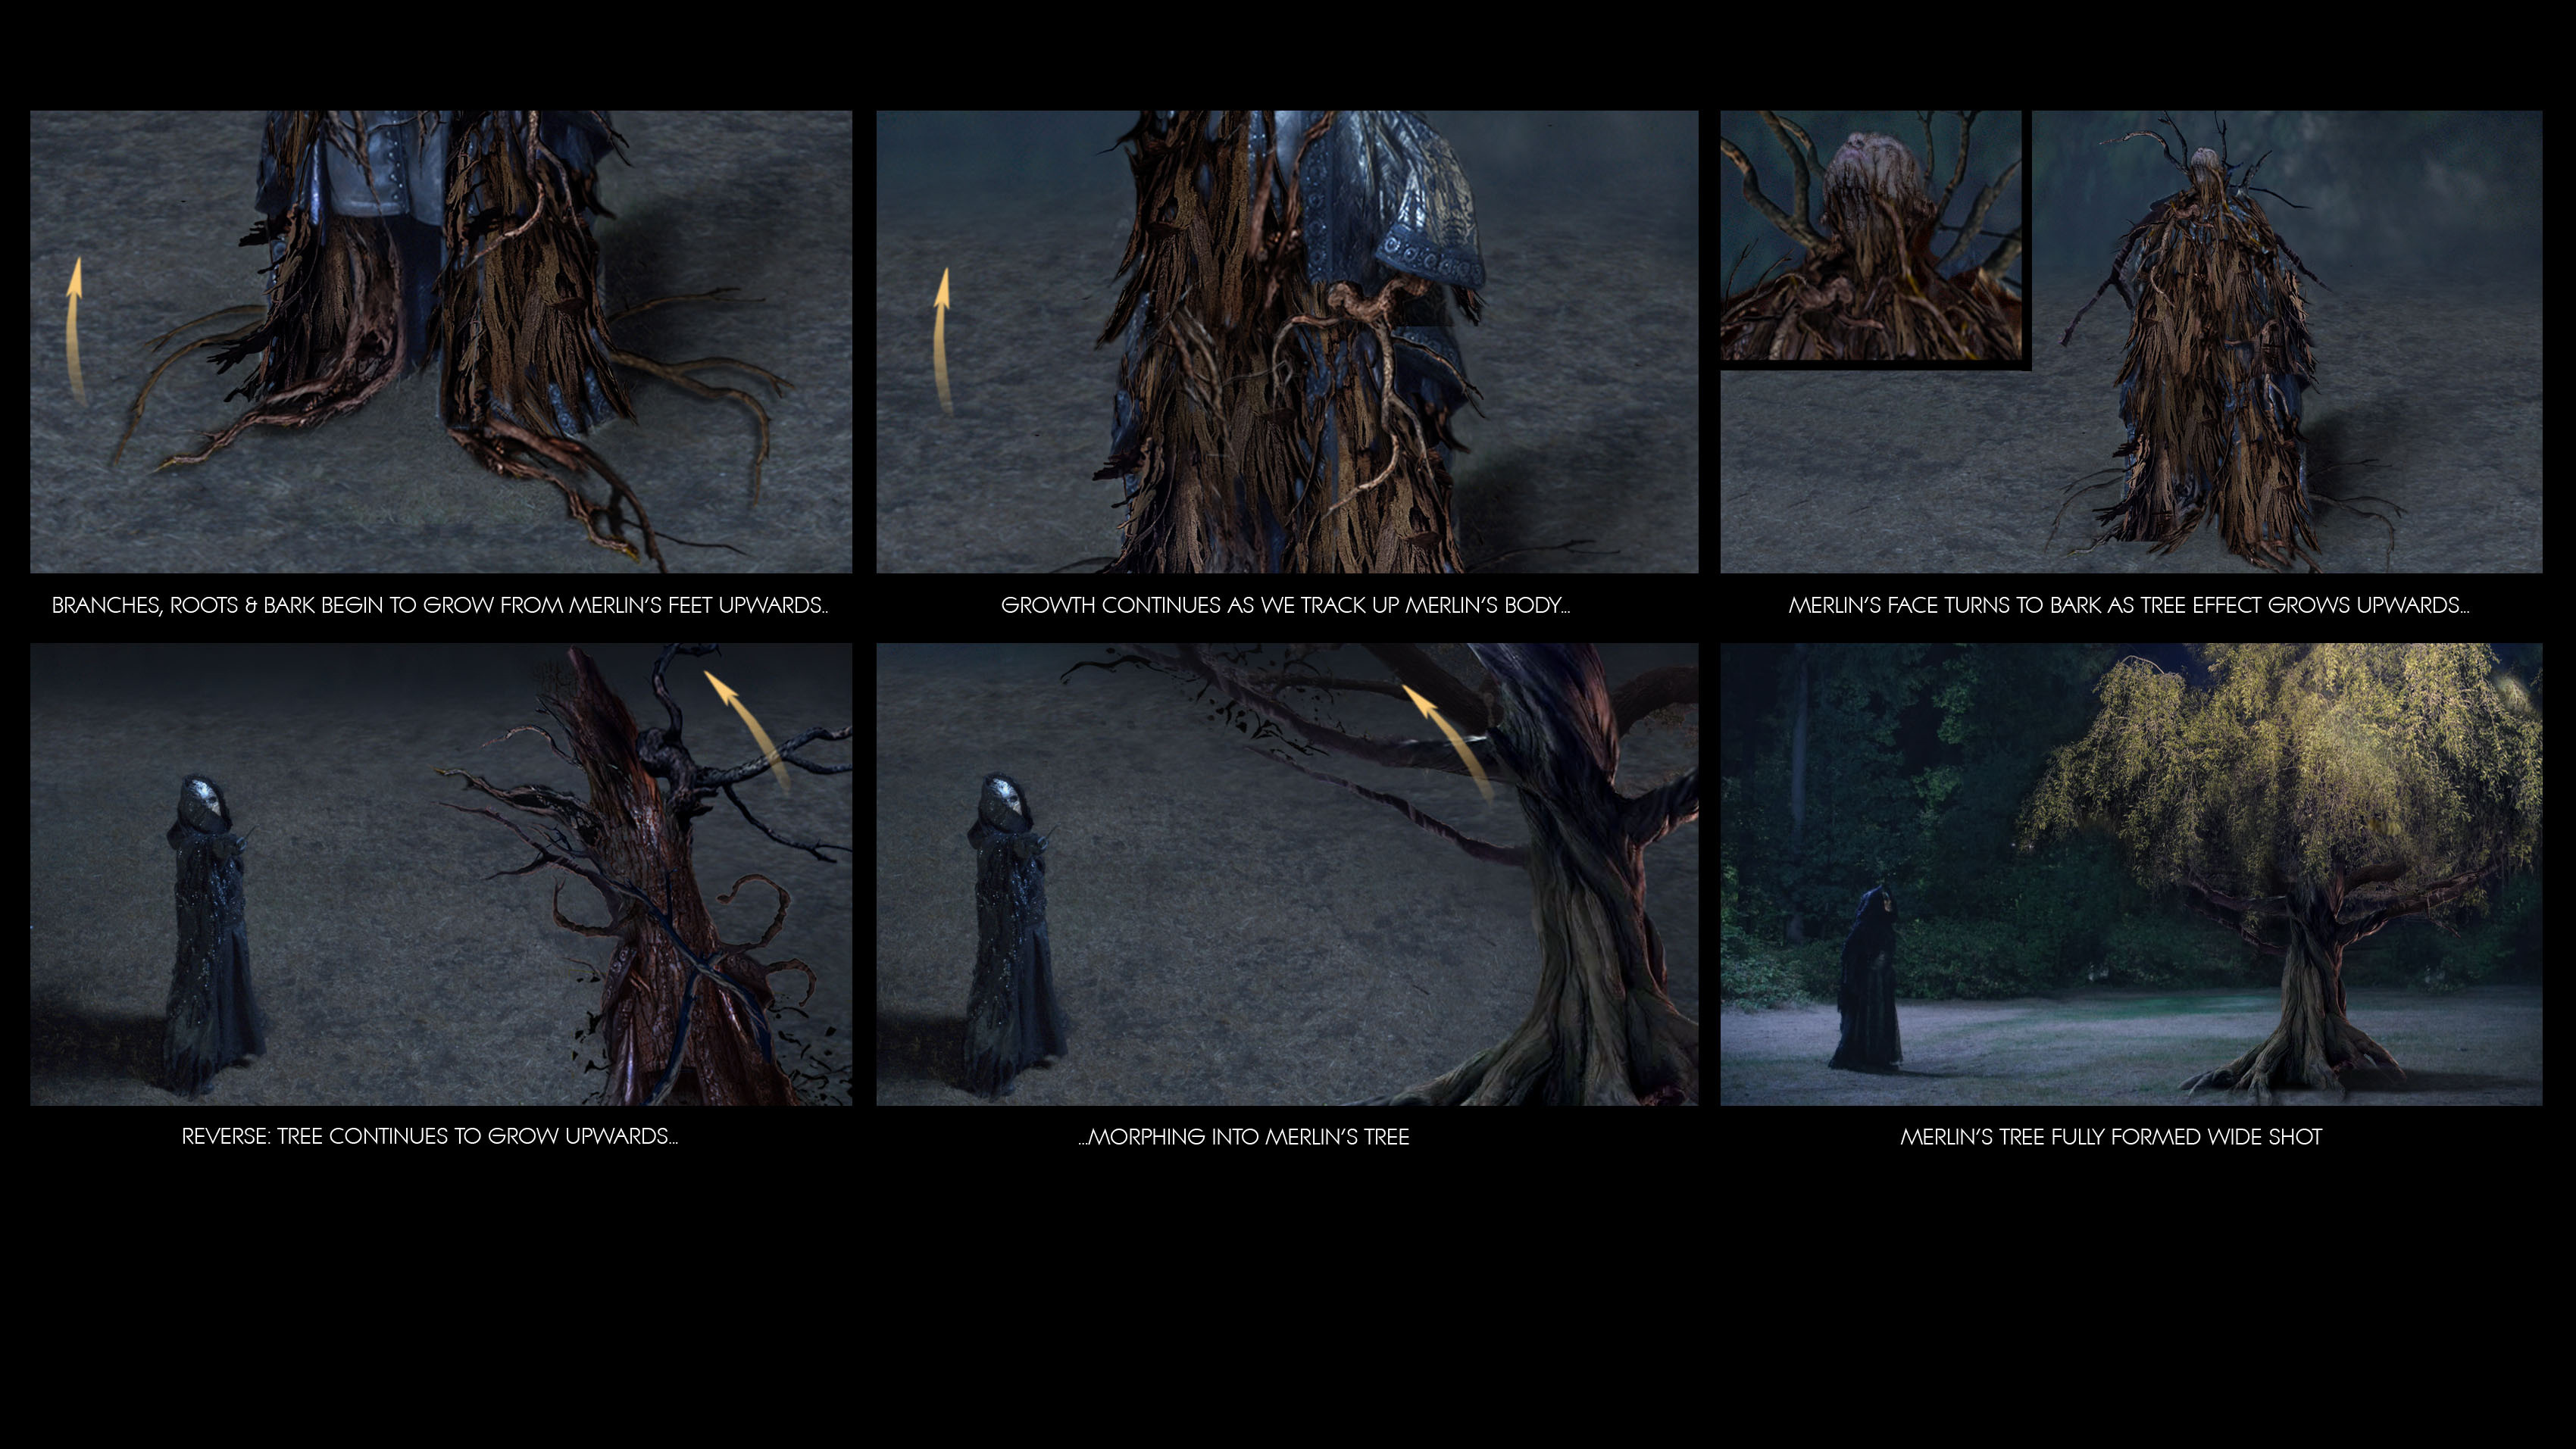 Merlin's Tree tranformation effect / Once Upon  a Time Season 5